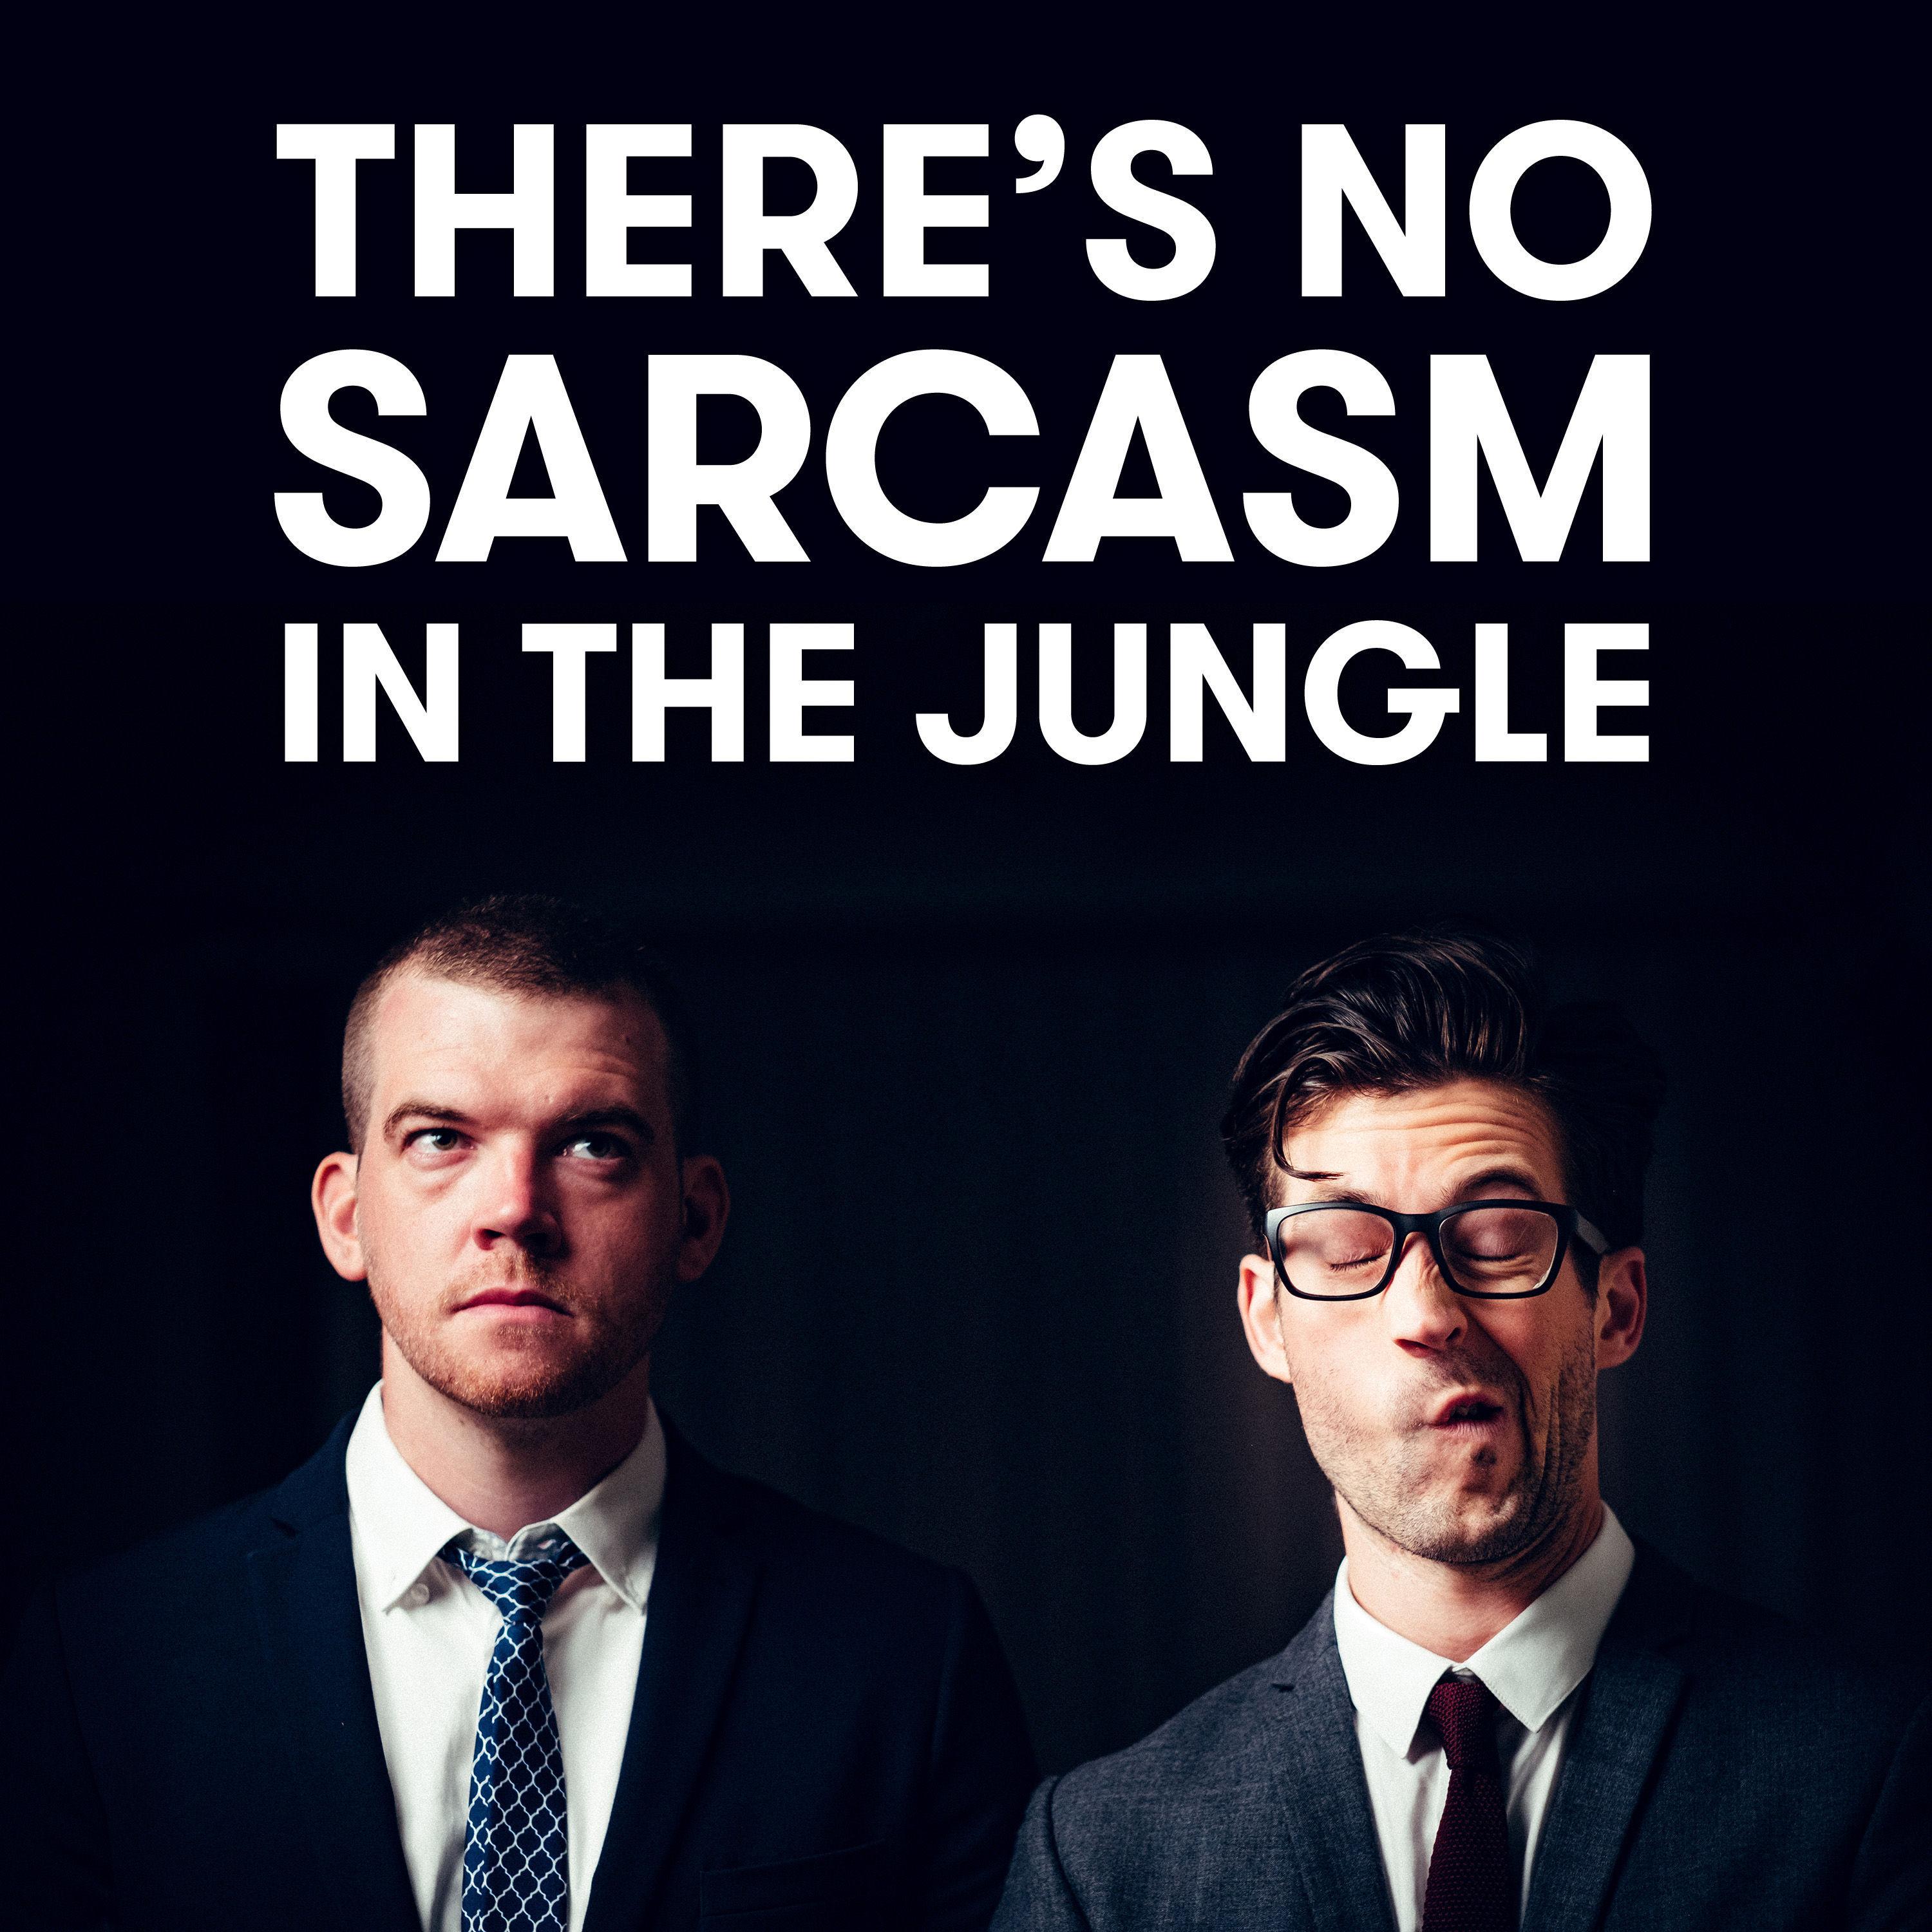 <![CDATA[There's No Sarcasm In The Jungle]]>